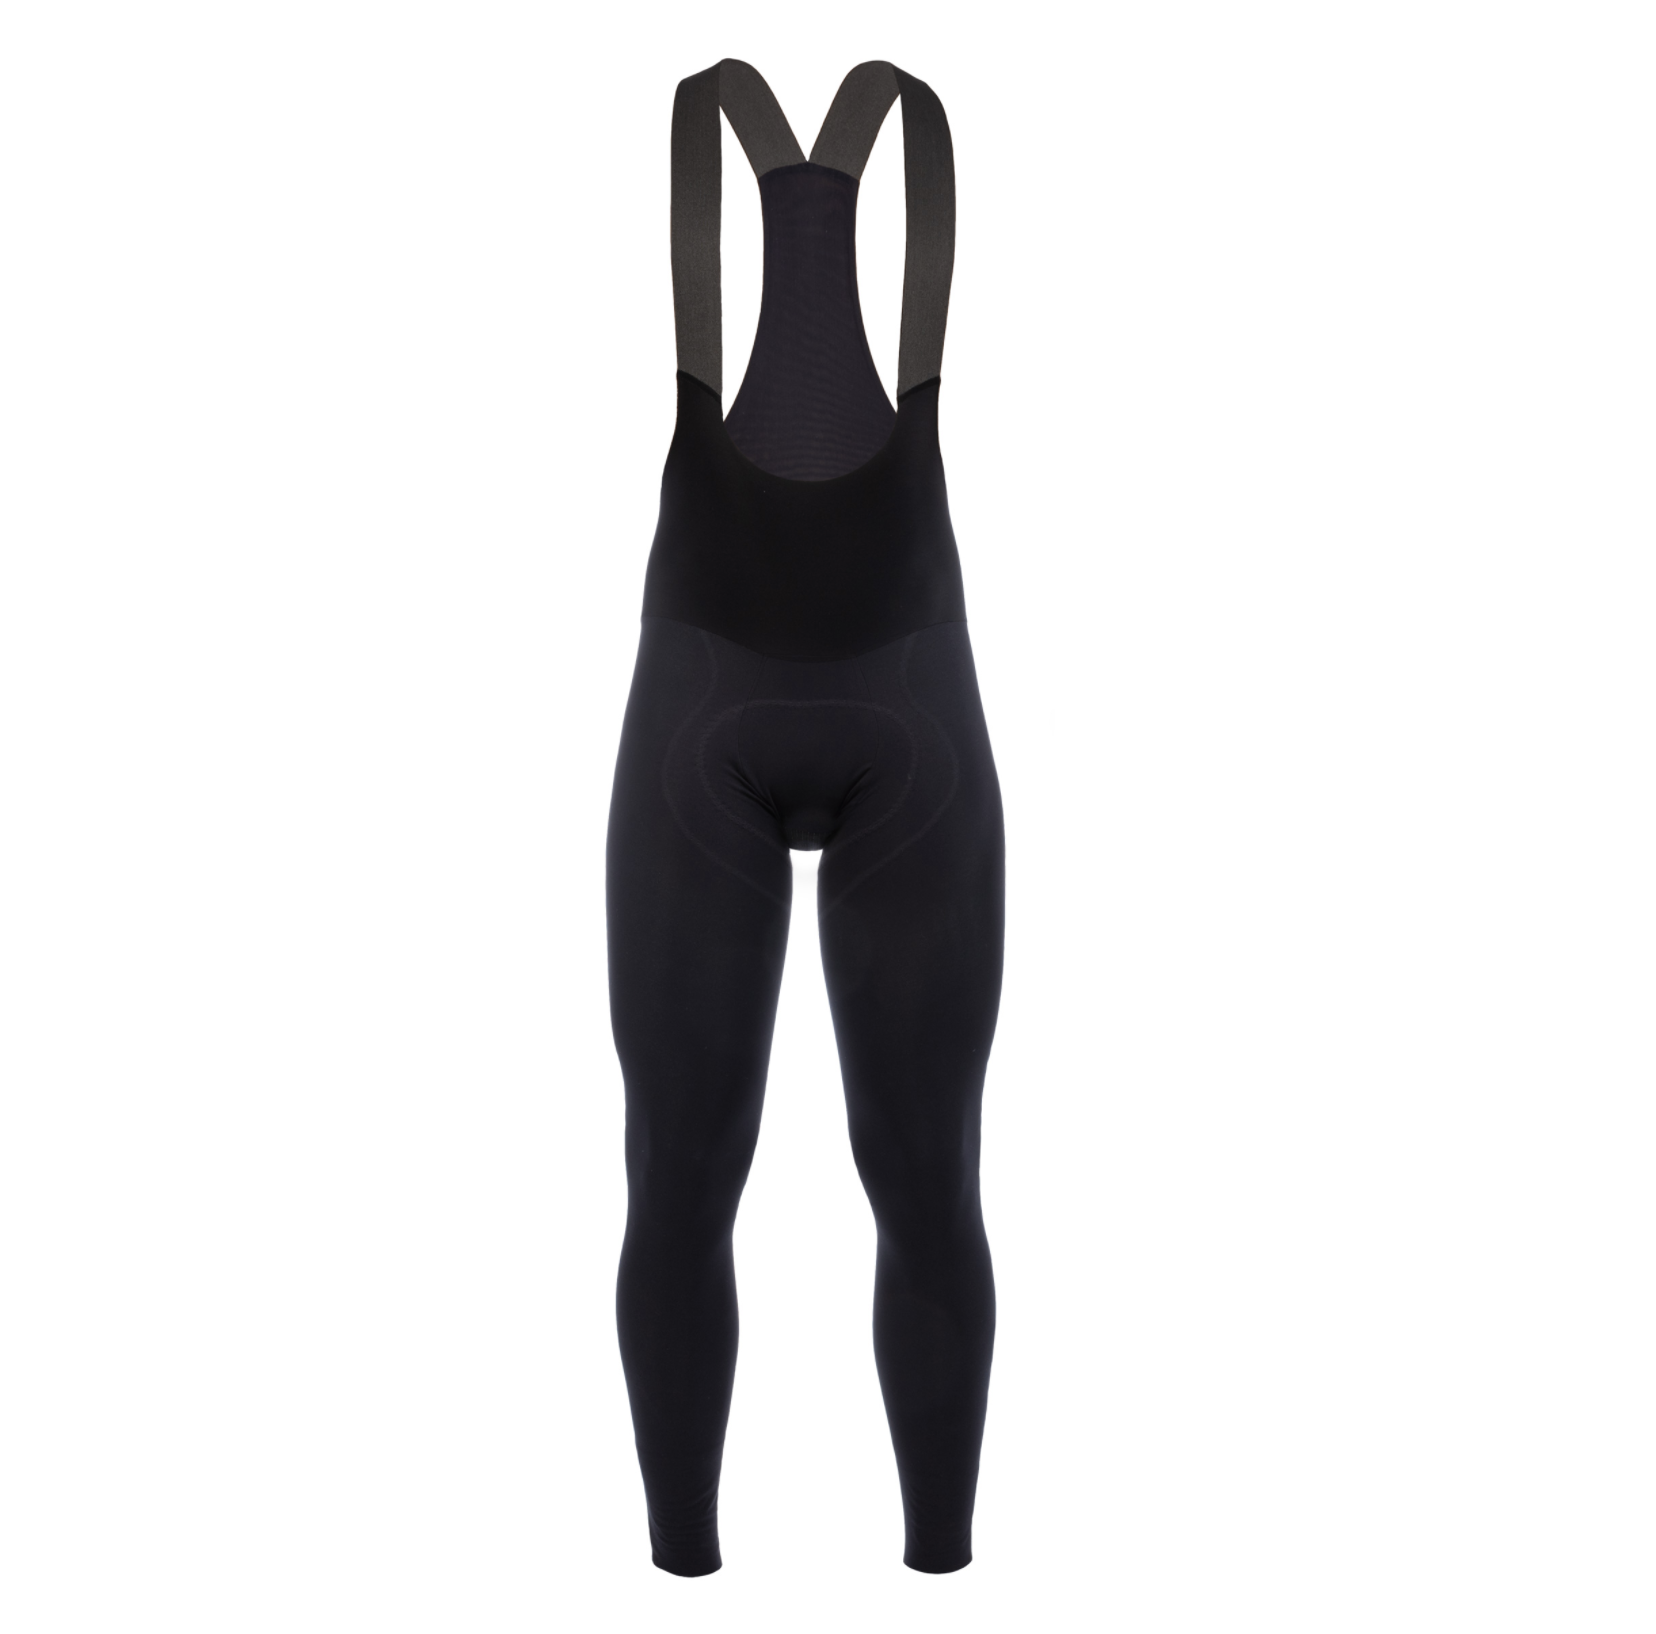 Q36.5 ZERO WINTER MENS SALOPETTE BIB SHORTS